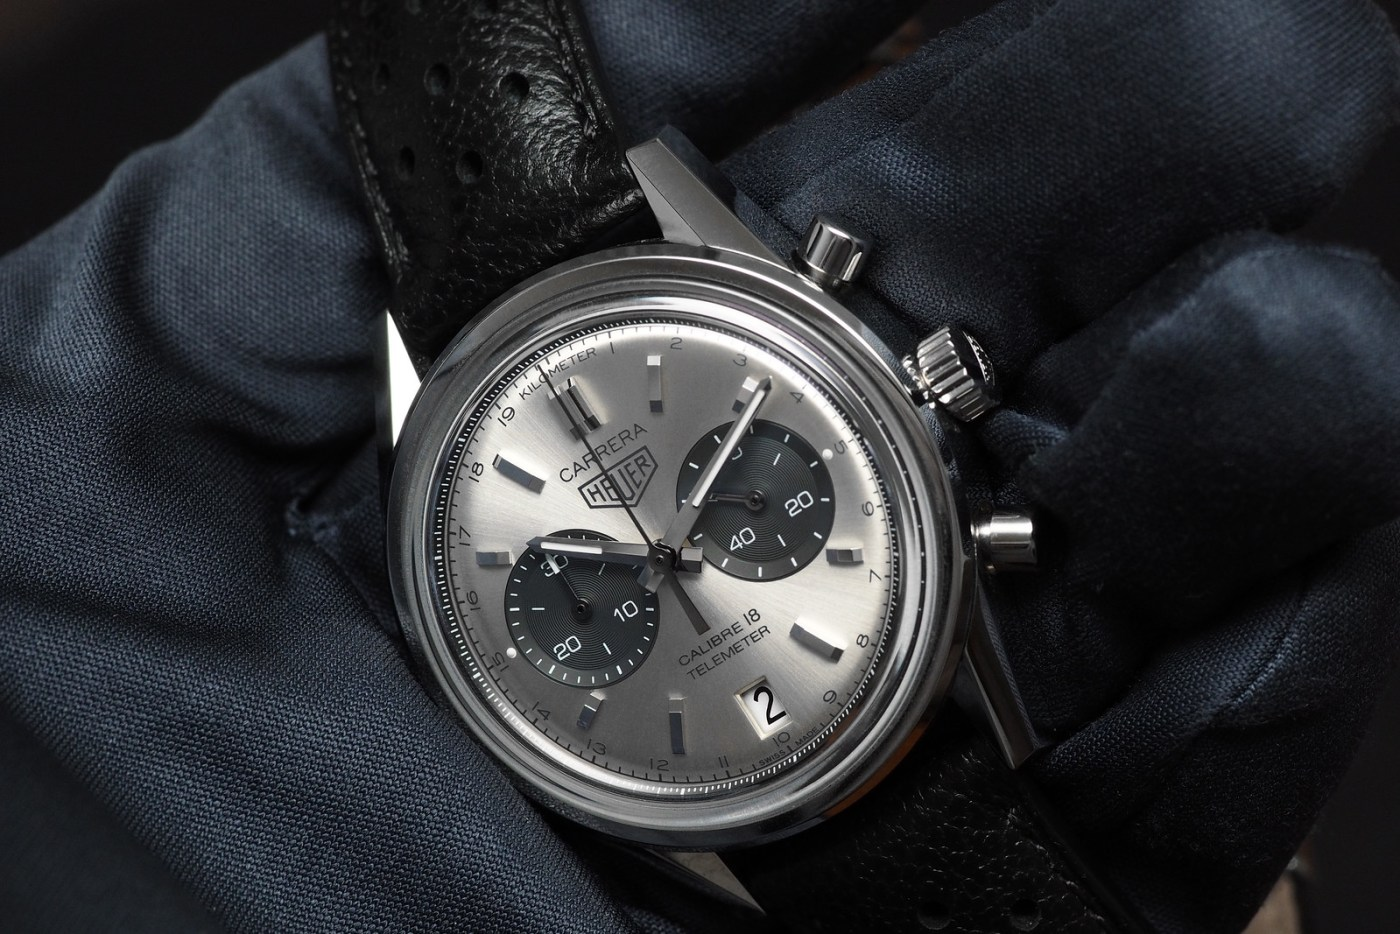 TAG Heuer Carrera Calibre 18 Automatic Chronograph Hands-On